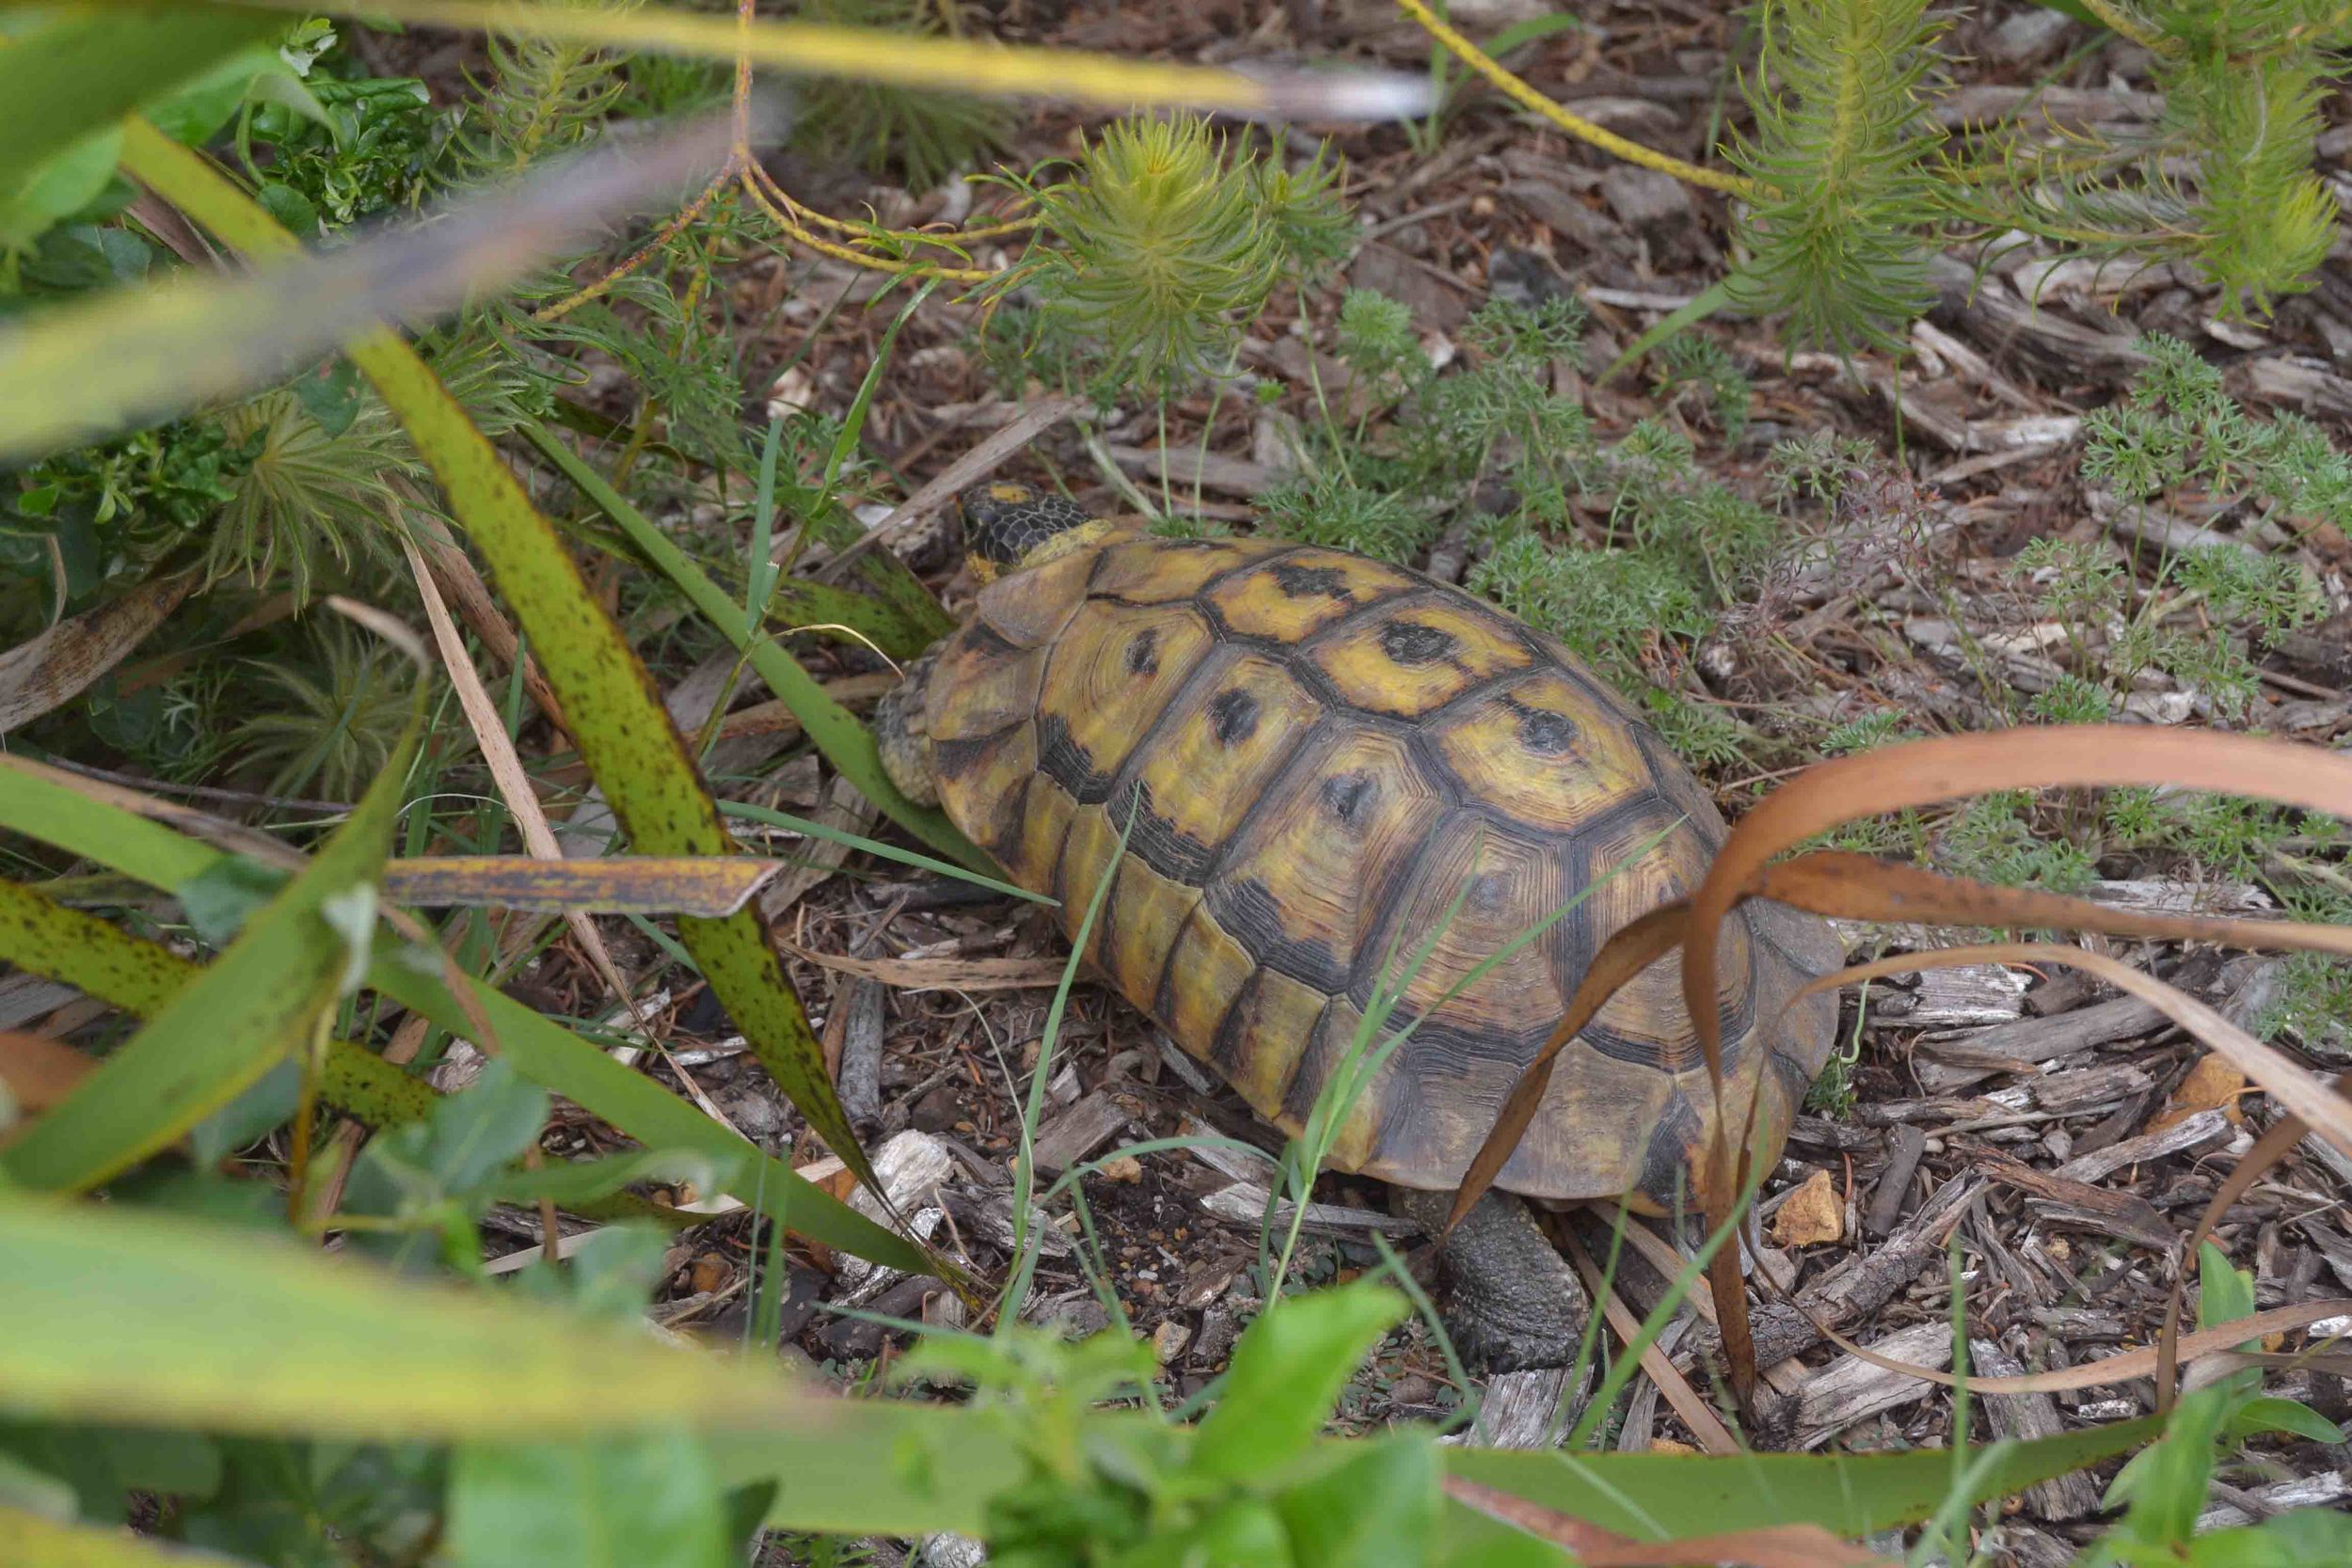 We spotted a tortoise enjoying a stroll in the garden!